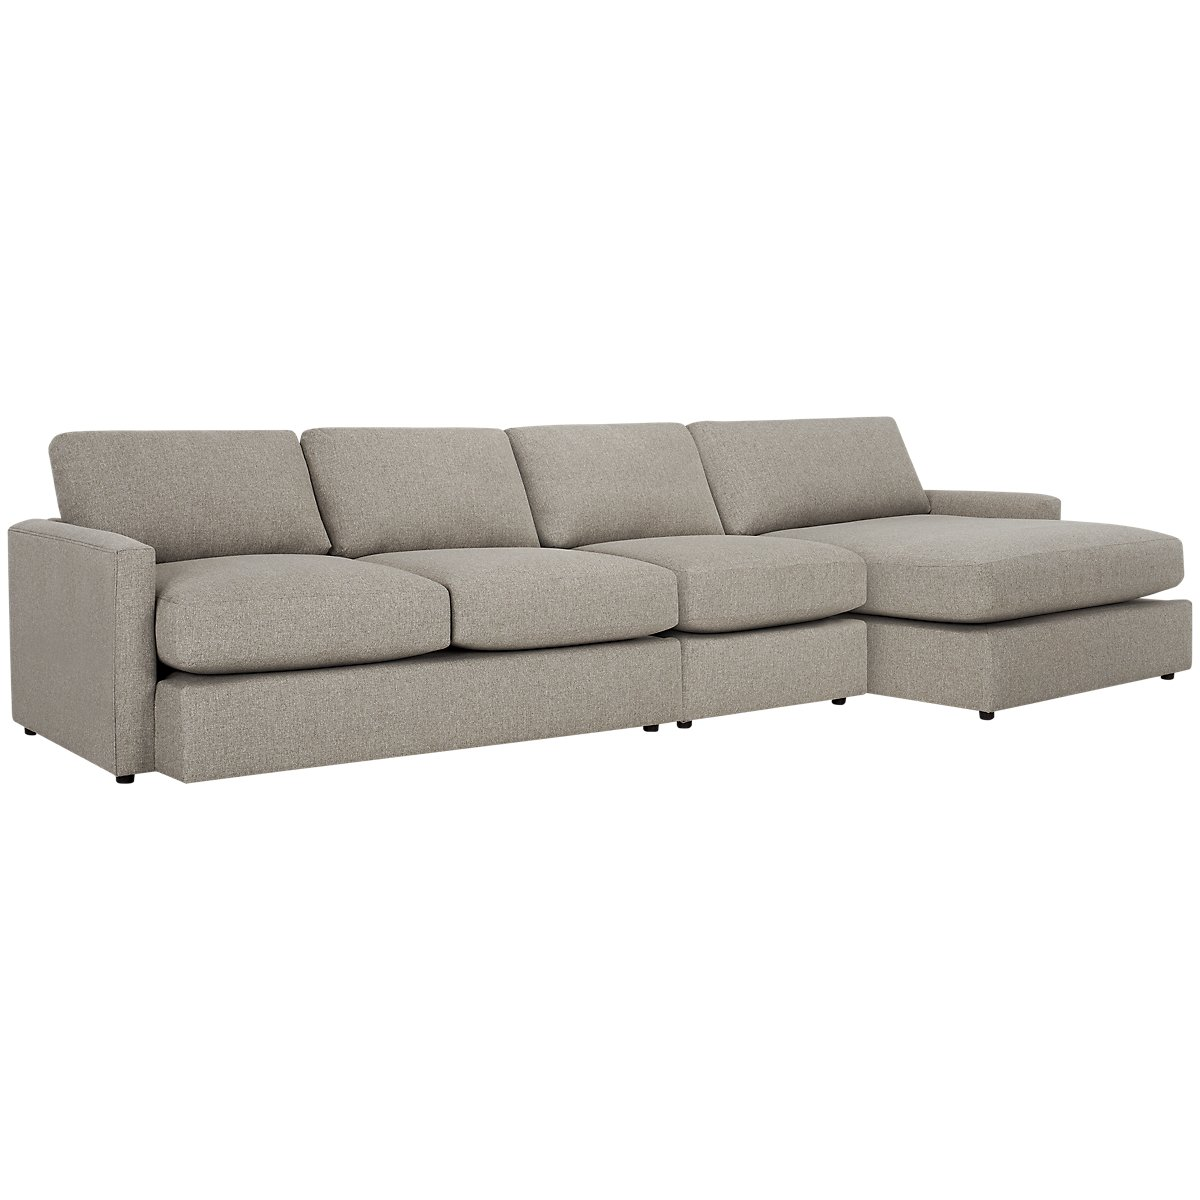 City furniture noah khaki fabric small right chaise sectional for Chaise kaki